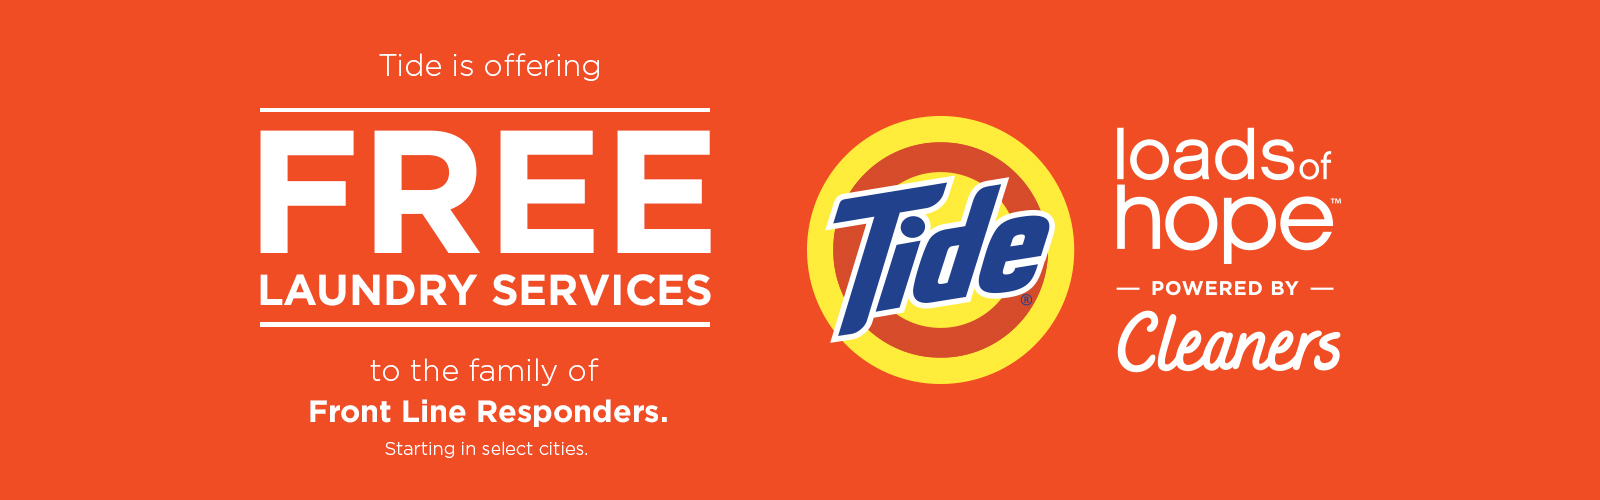 Tide Cleaners Free Laundry Service